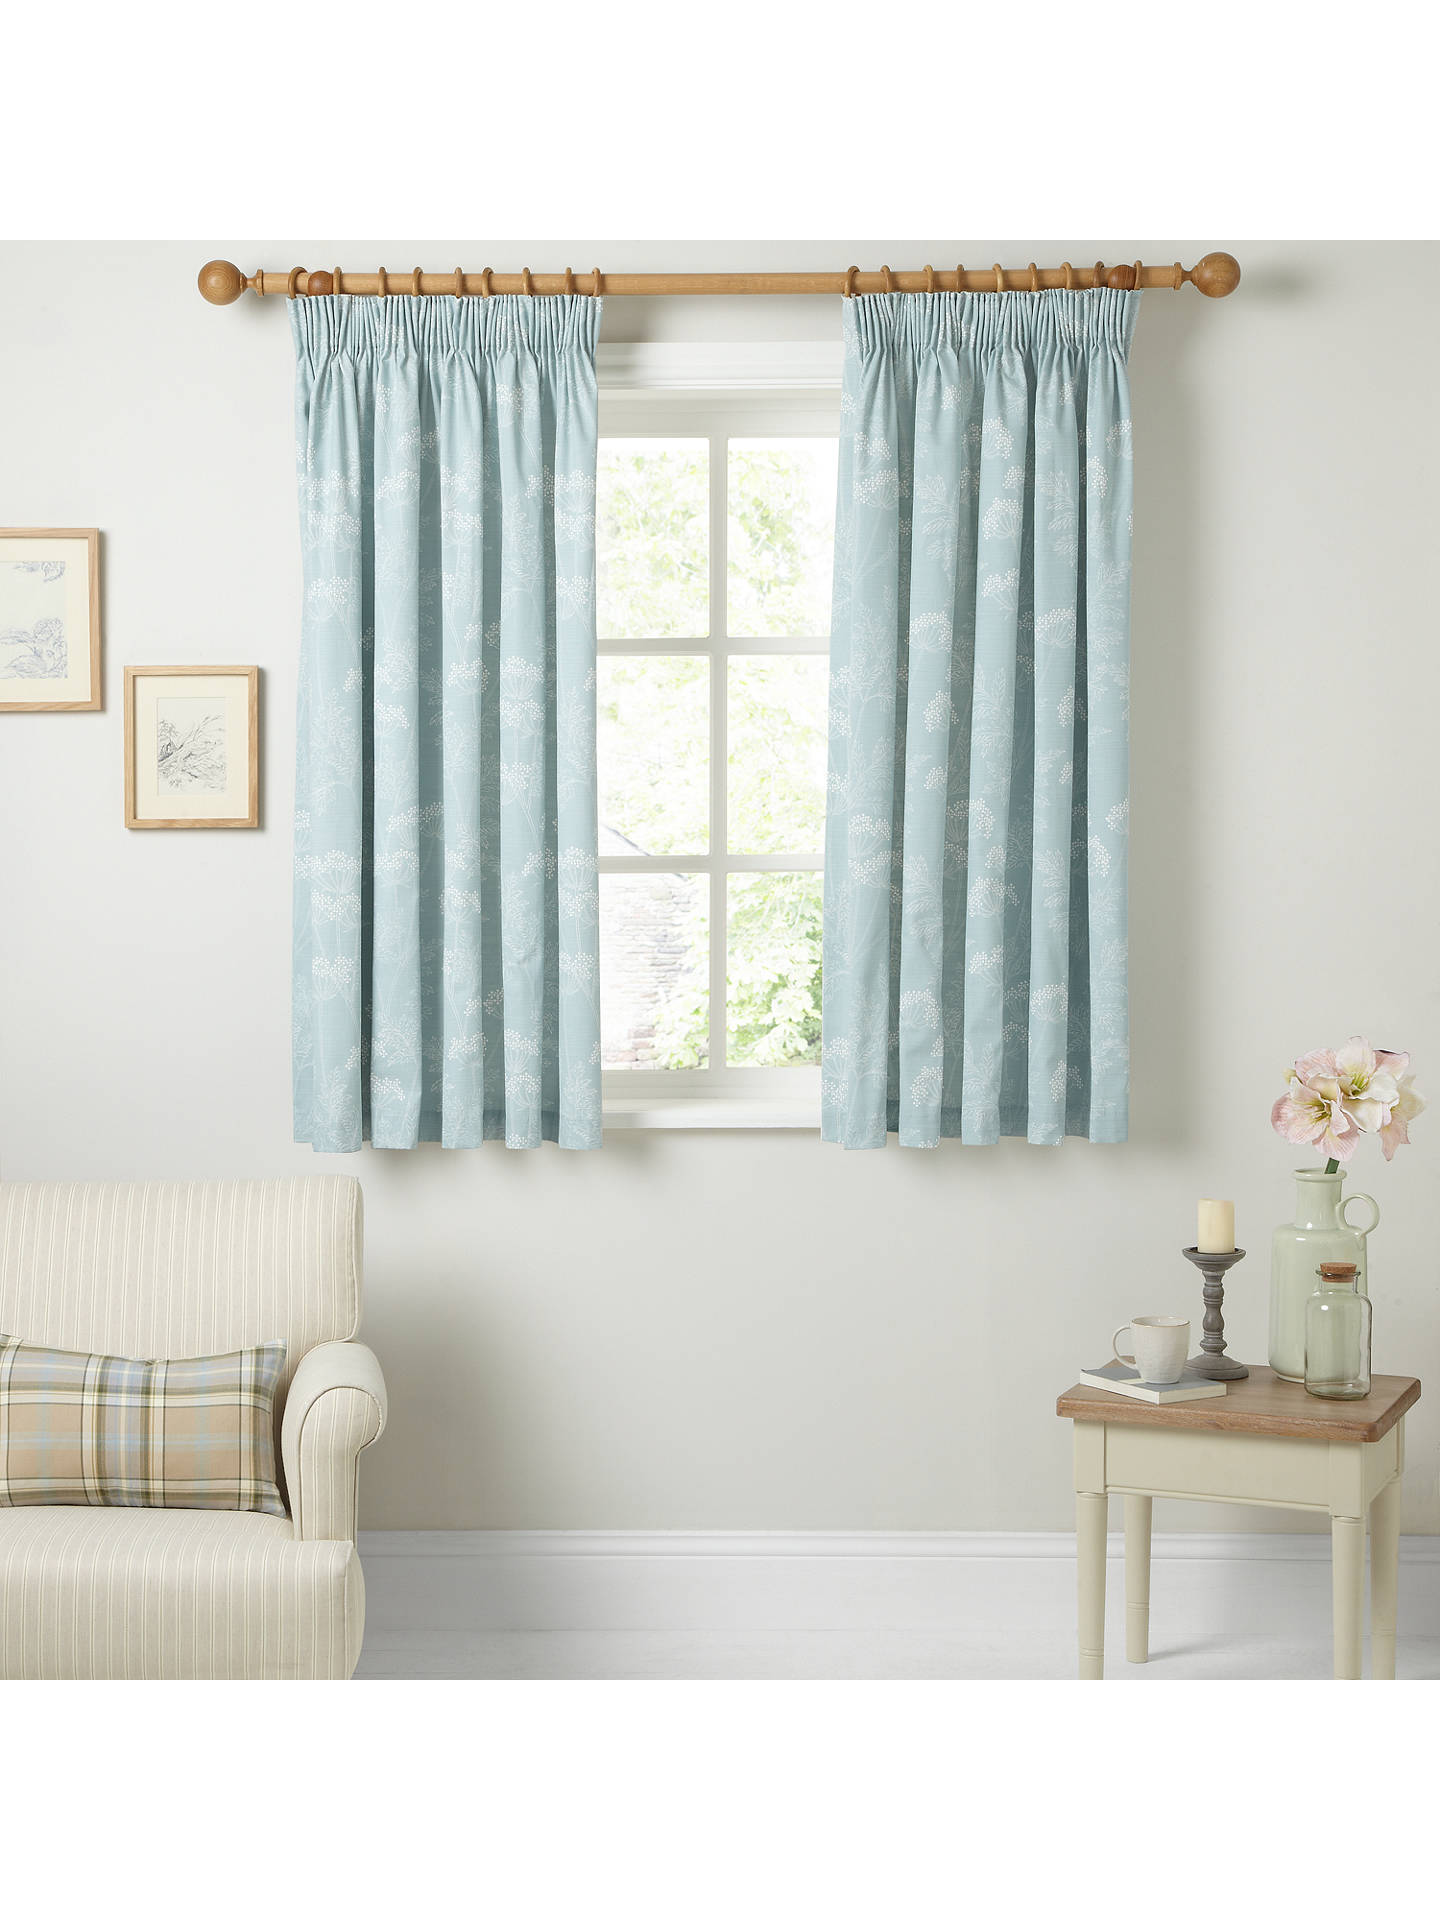 Buy John Lewis & Partners Cow Parsley Pair Lined Pencil Pleat Curtains, Duck Egg, W228 x Drop 228cm Online at johnlewis.com